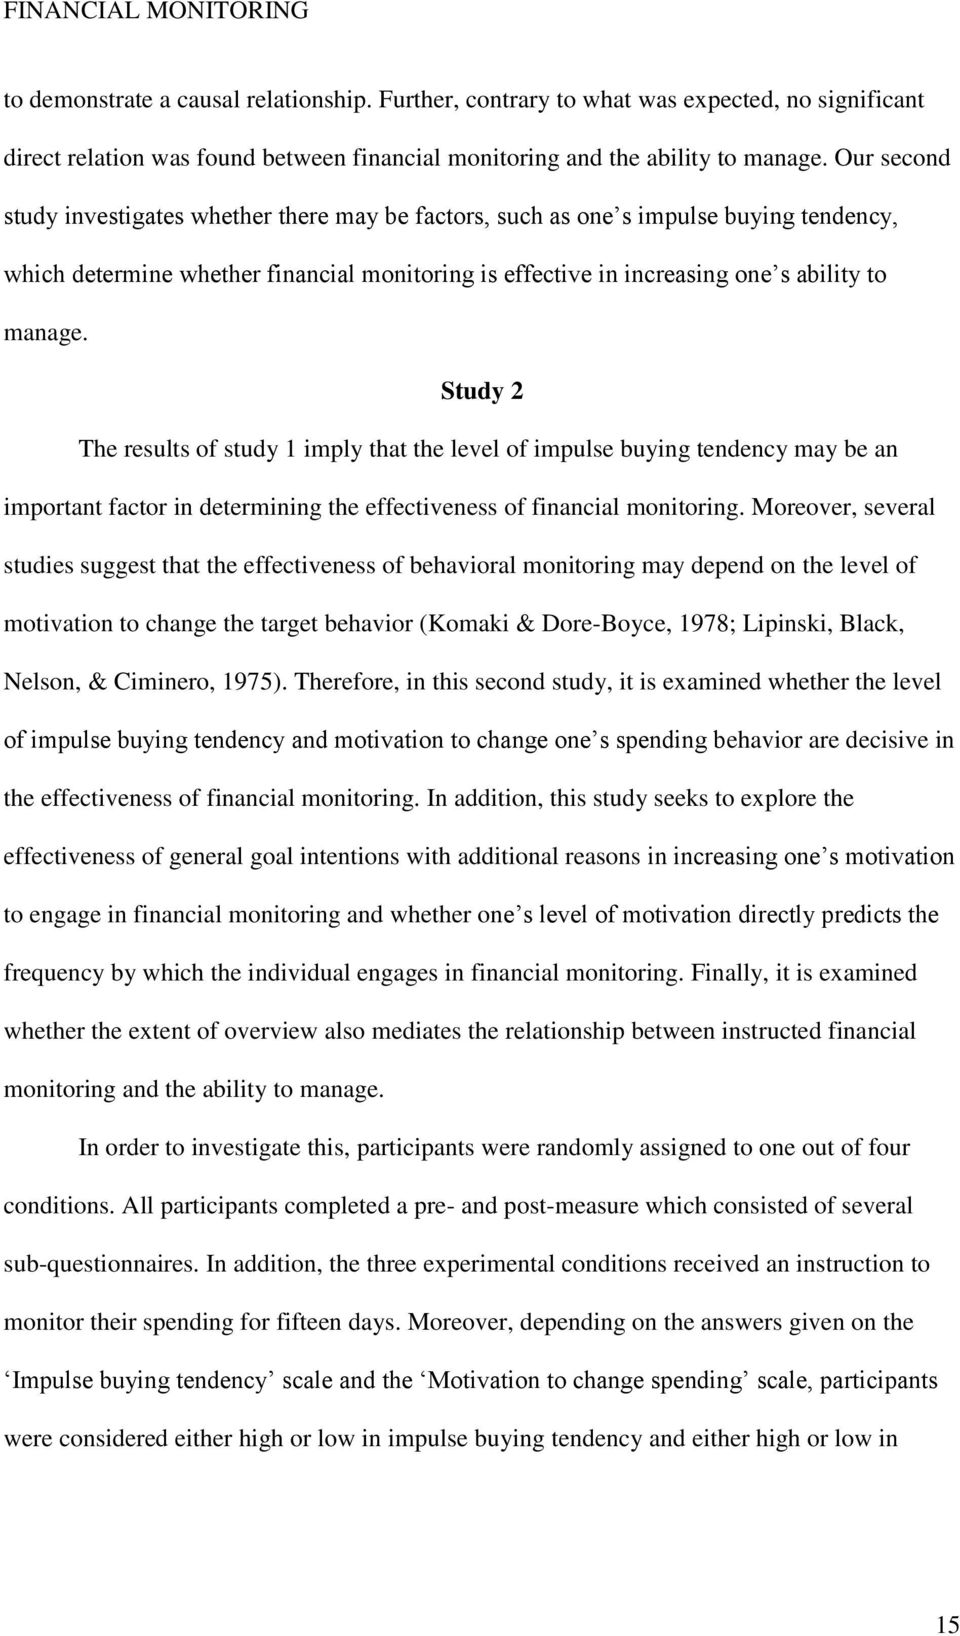 Study 2 The results of study 1 imply that the level of impulse buying tendency may be an important factor in determining the effectiveness of financial monitoring.